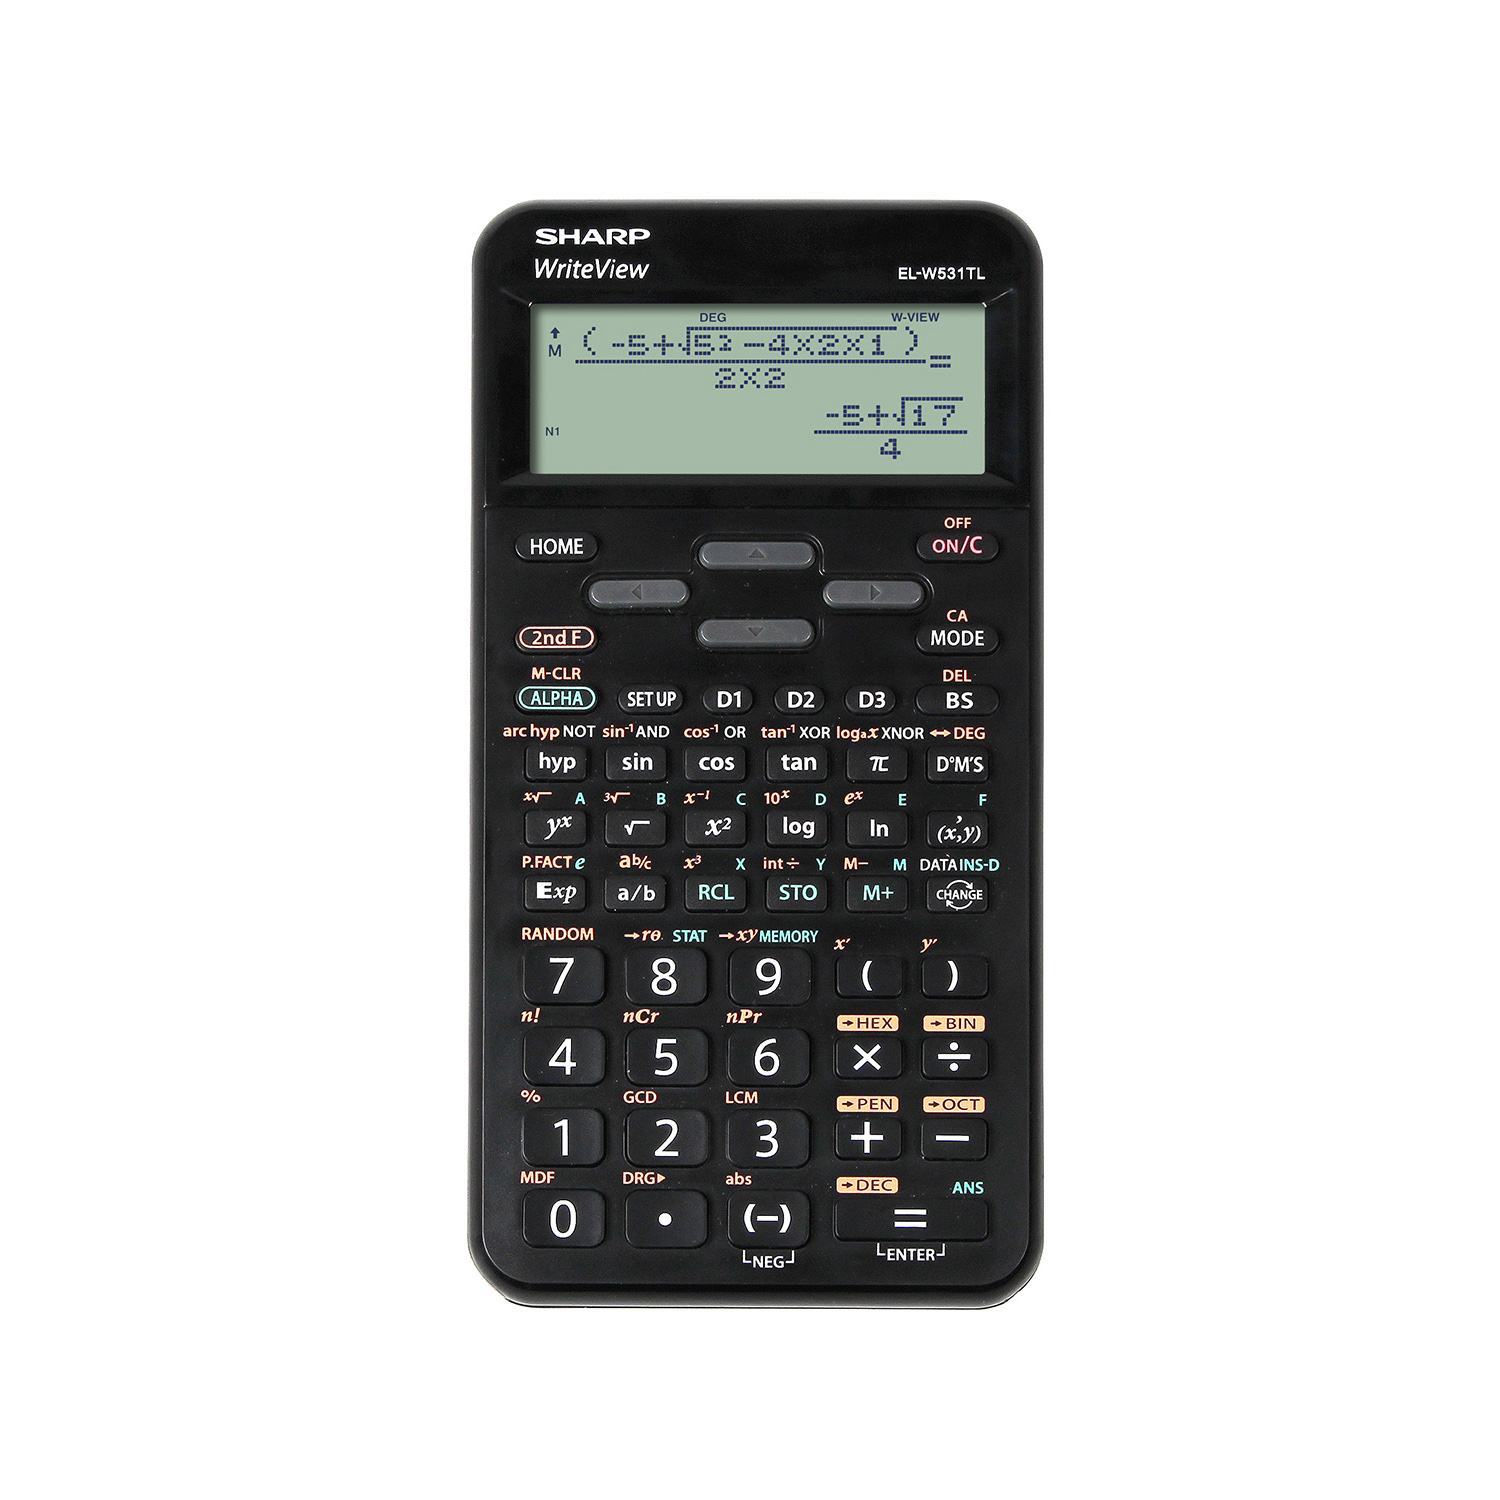 Sharp WriteView Scientific Calculator Dot Matrix Display 420 Functions 80x15x158mm Blk Ref SH-ELW531TLBBK